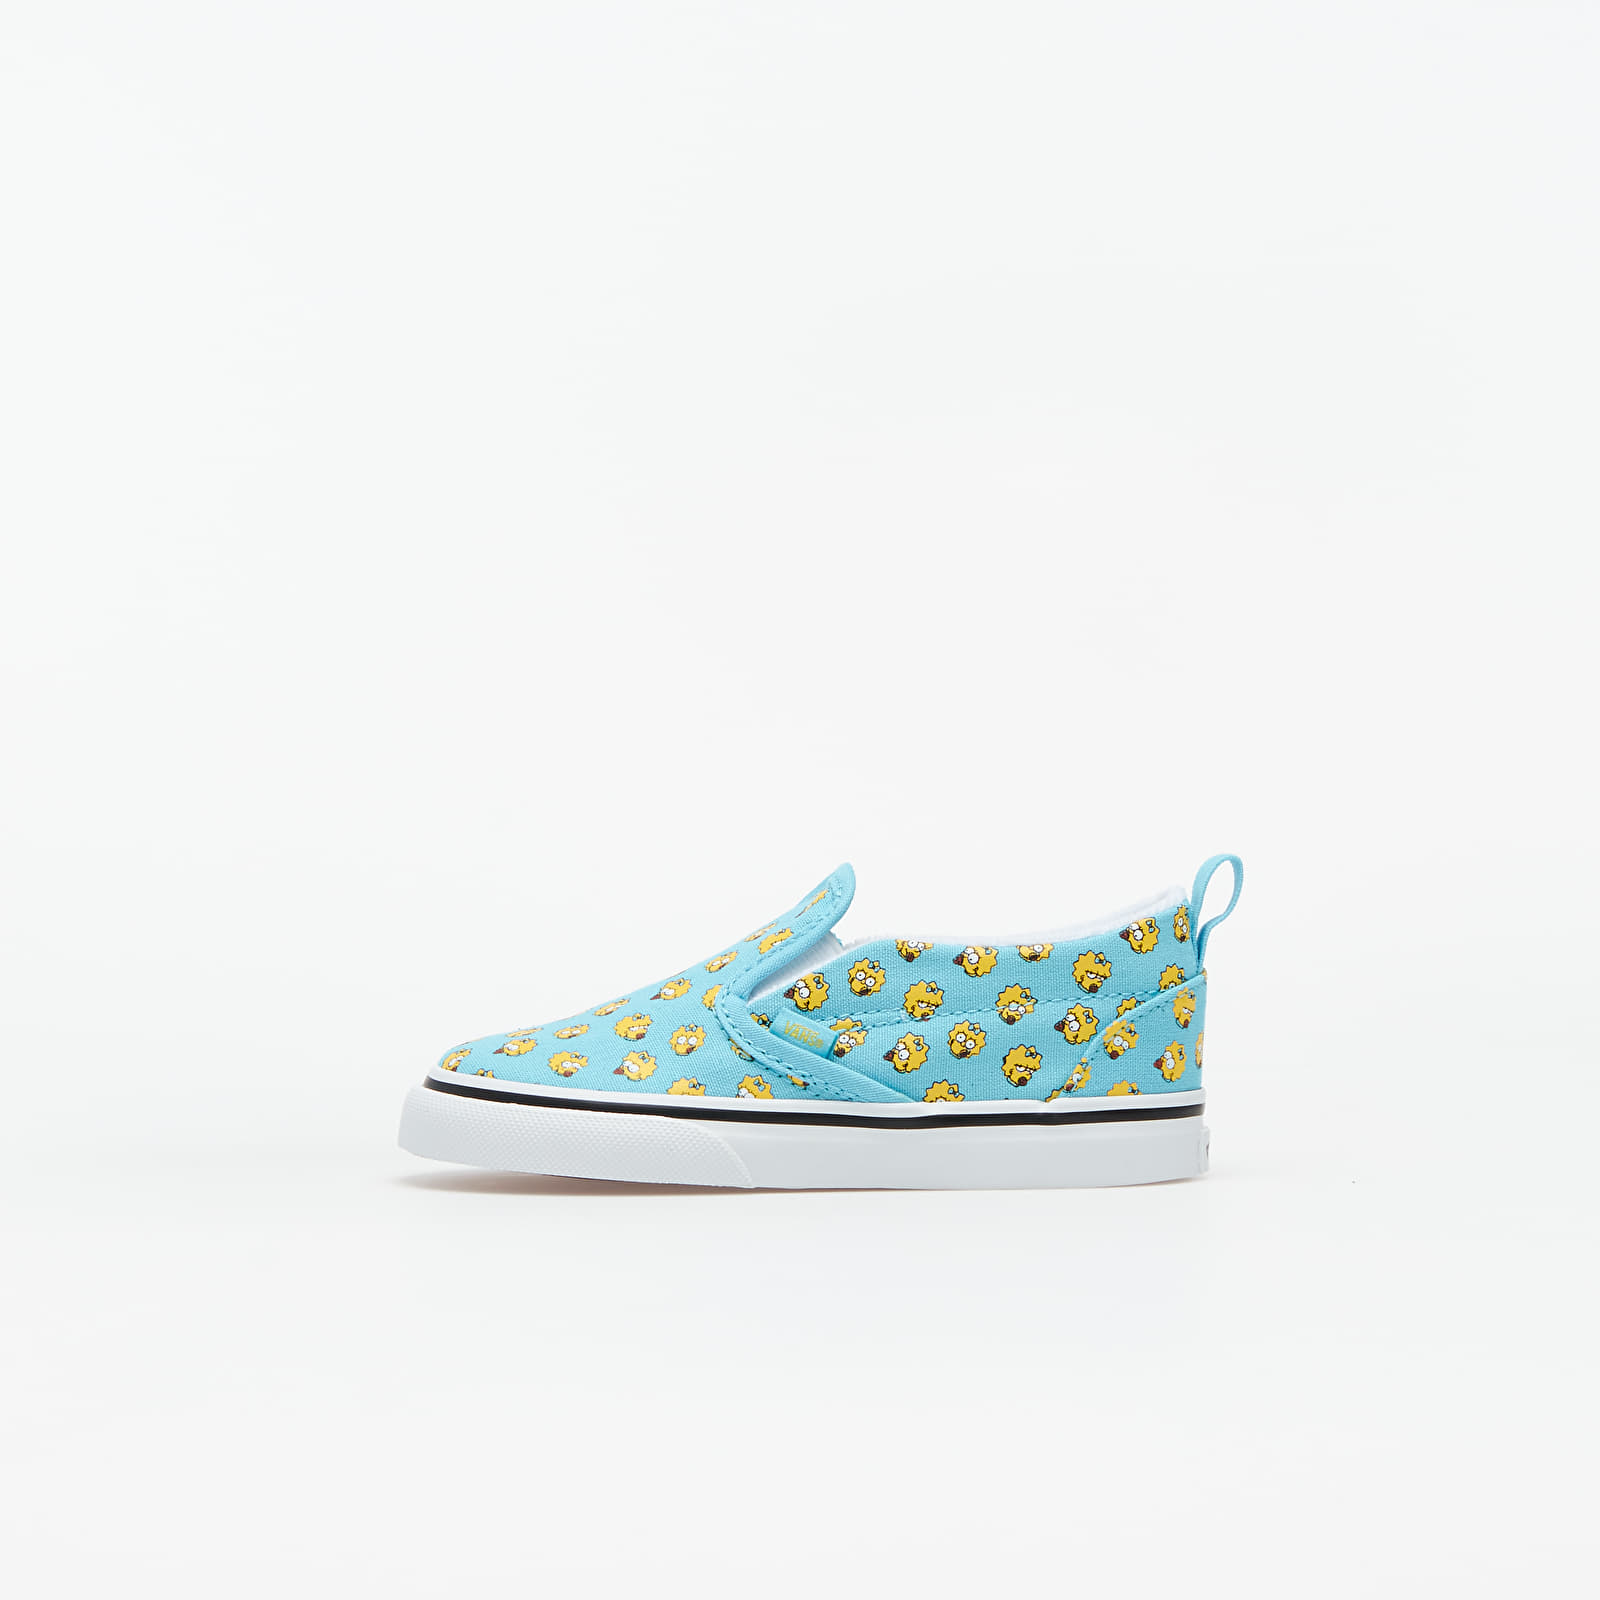 Chaussures et baskets enfants Vans Slip-On V (The Simpsons) Maggie